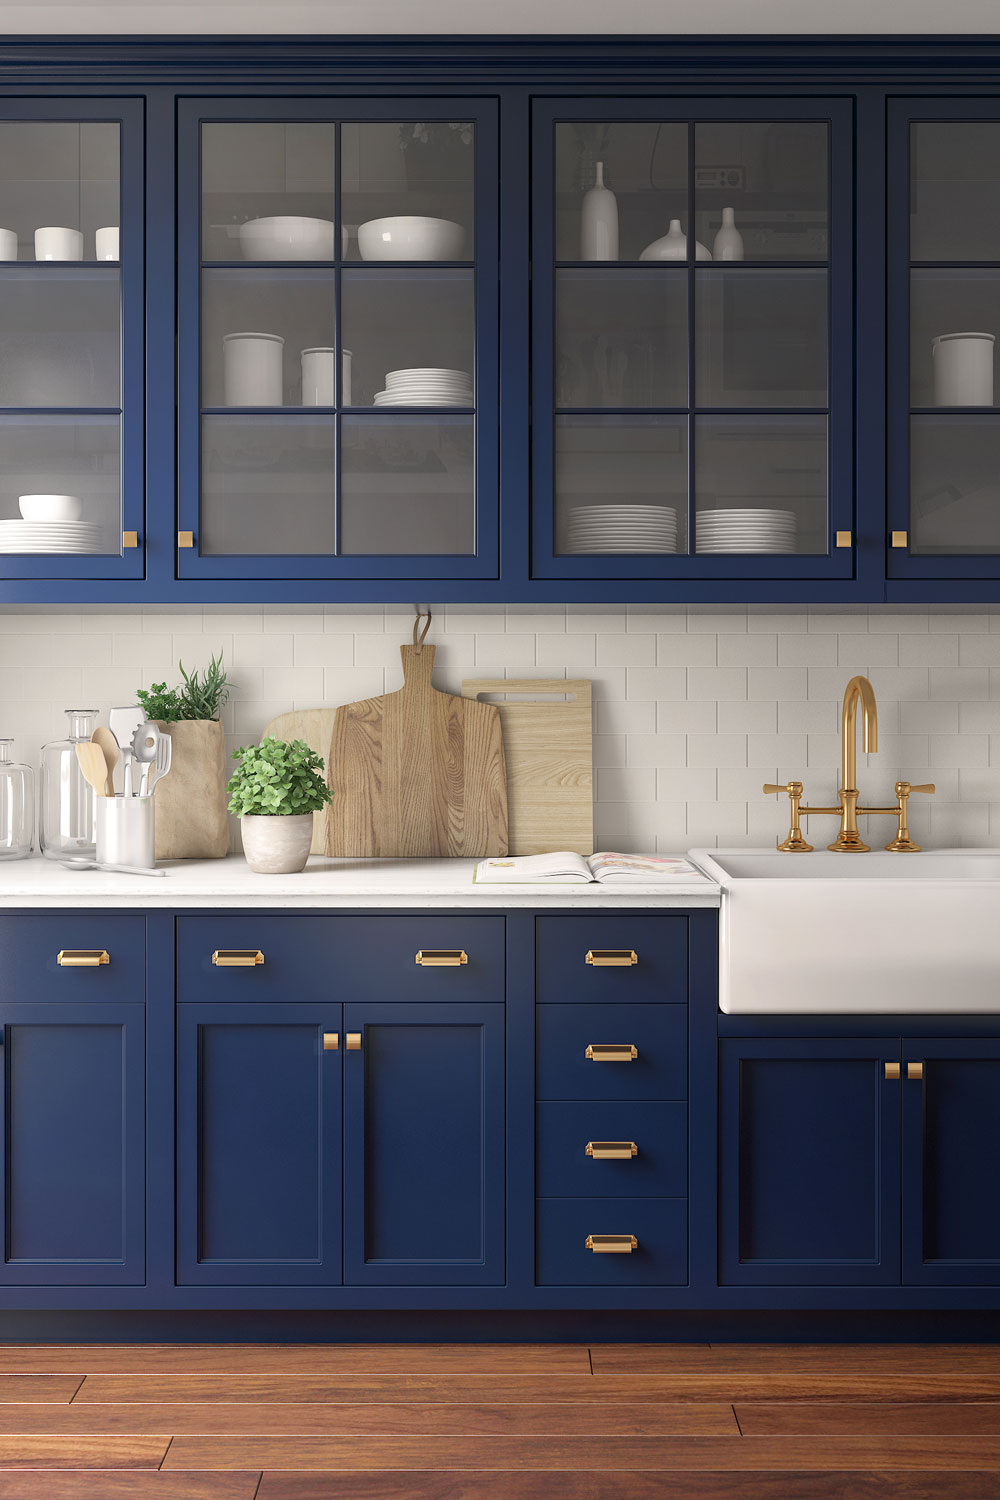 deckor-kitchen.jpg